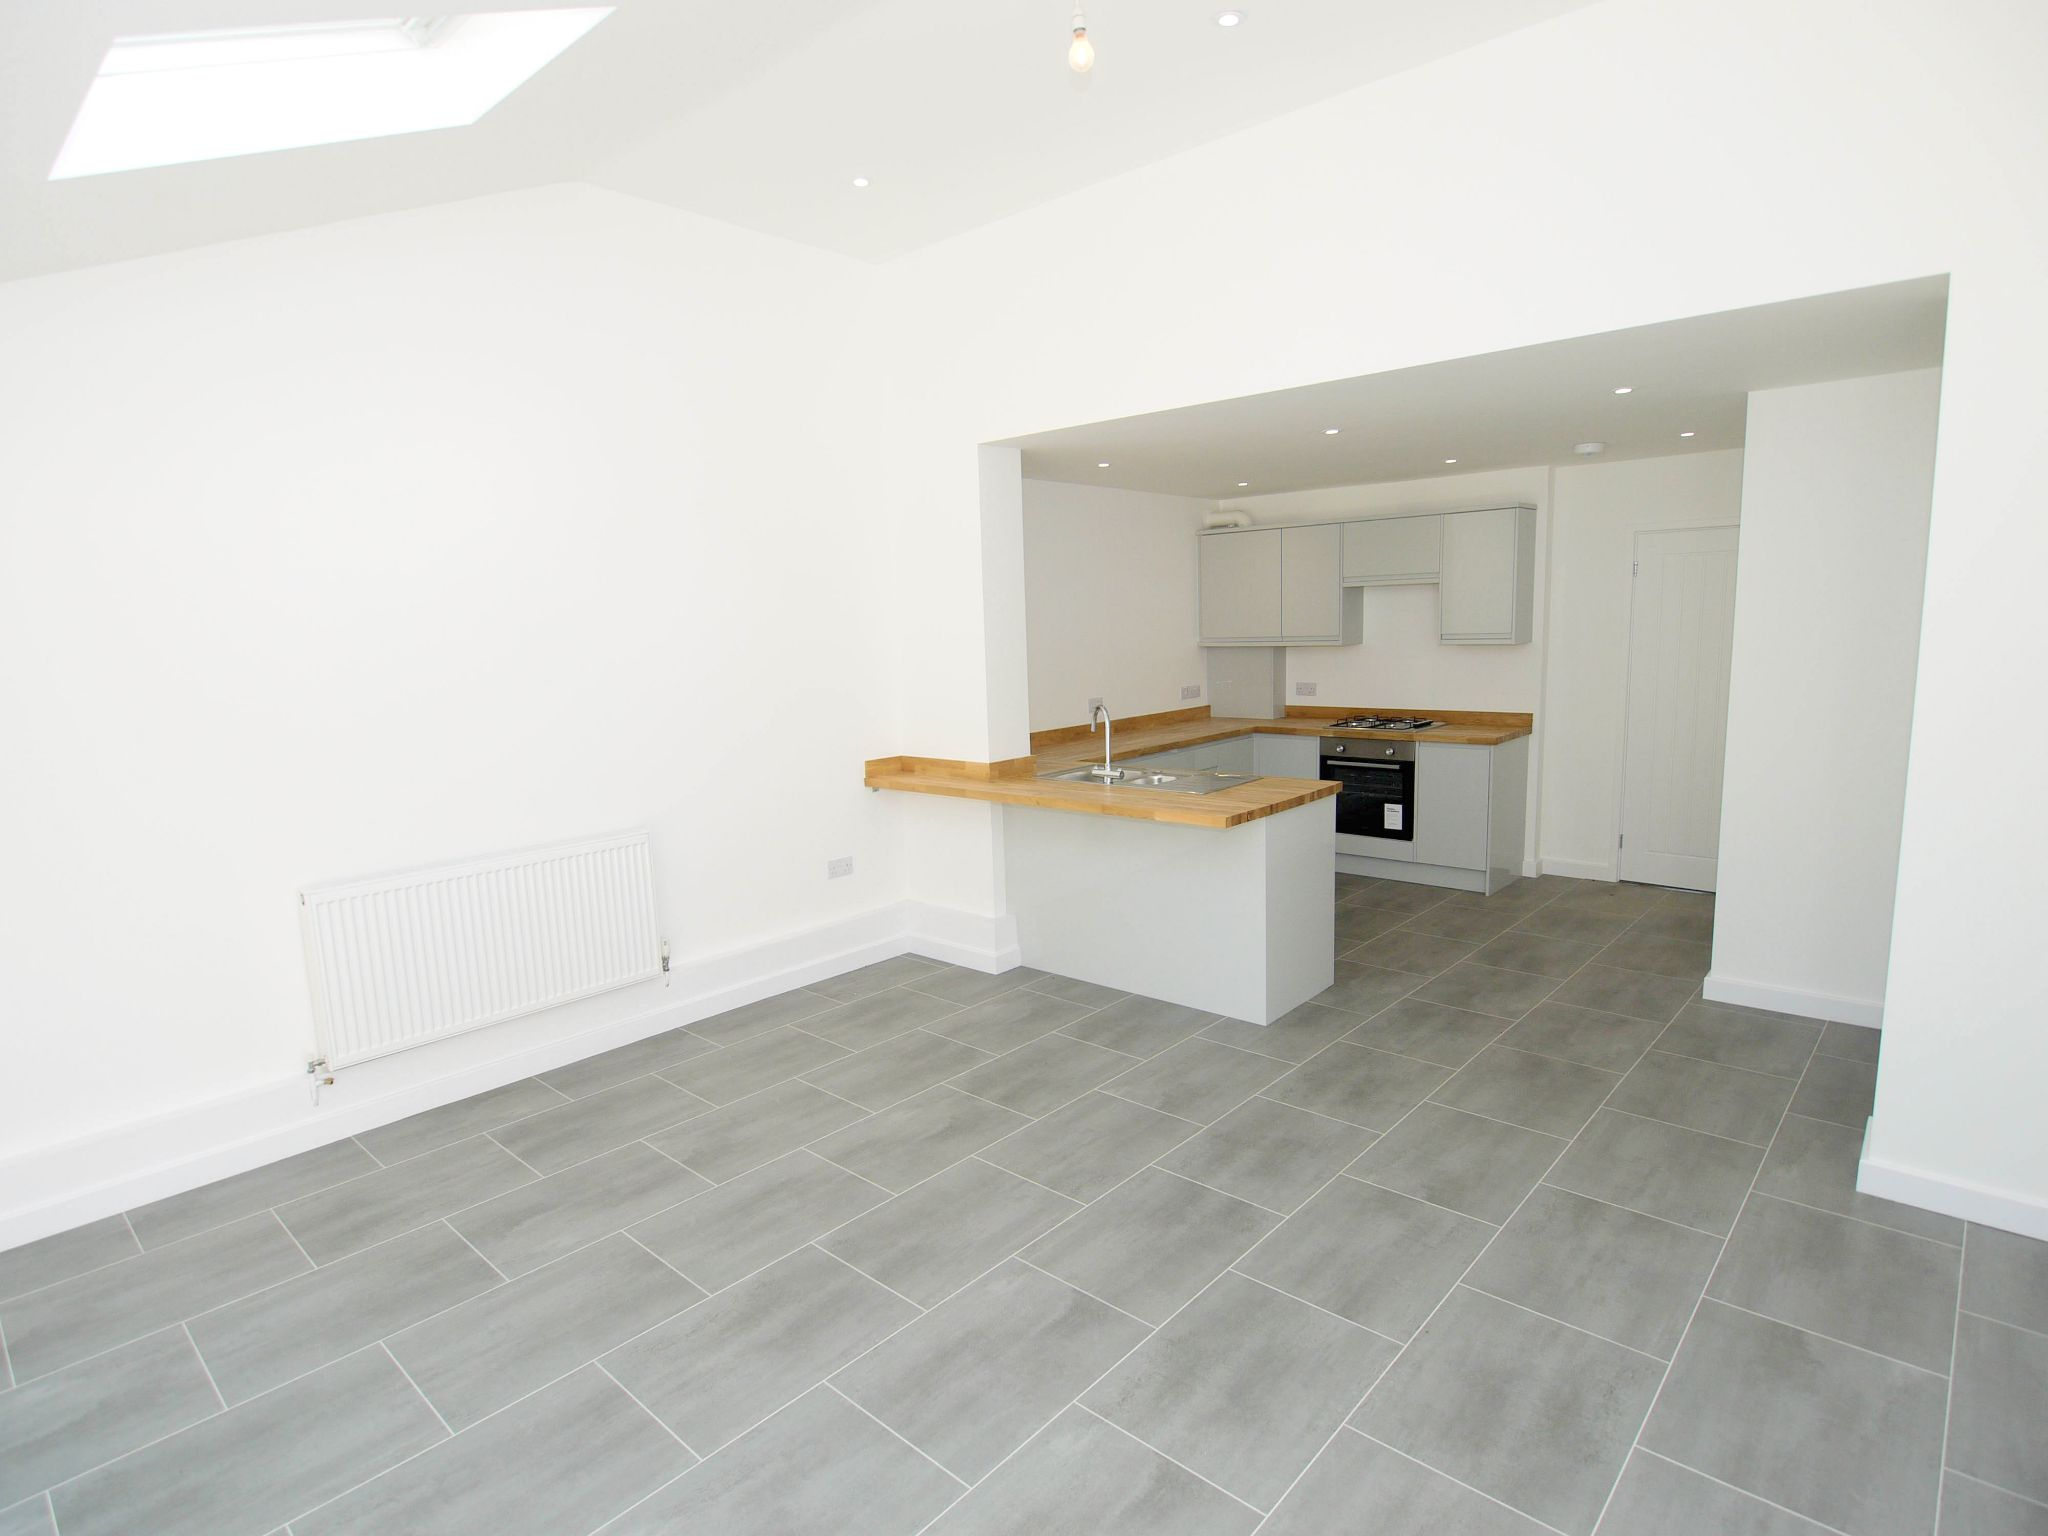 3 bedroom end terraced house Sold in Tonbridge - Photograph 4